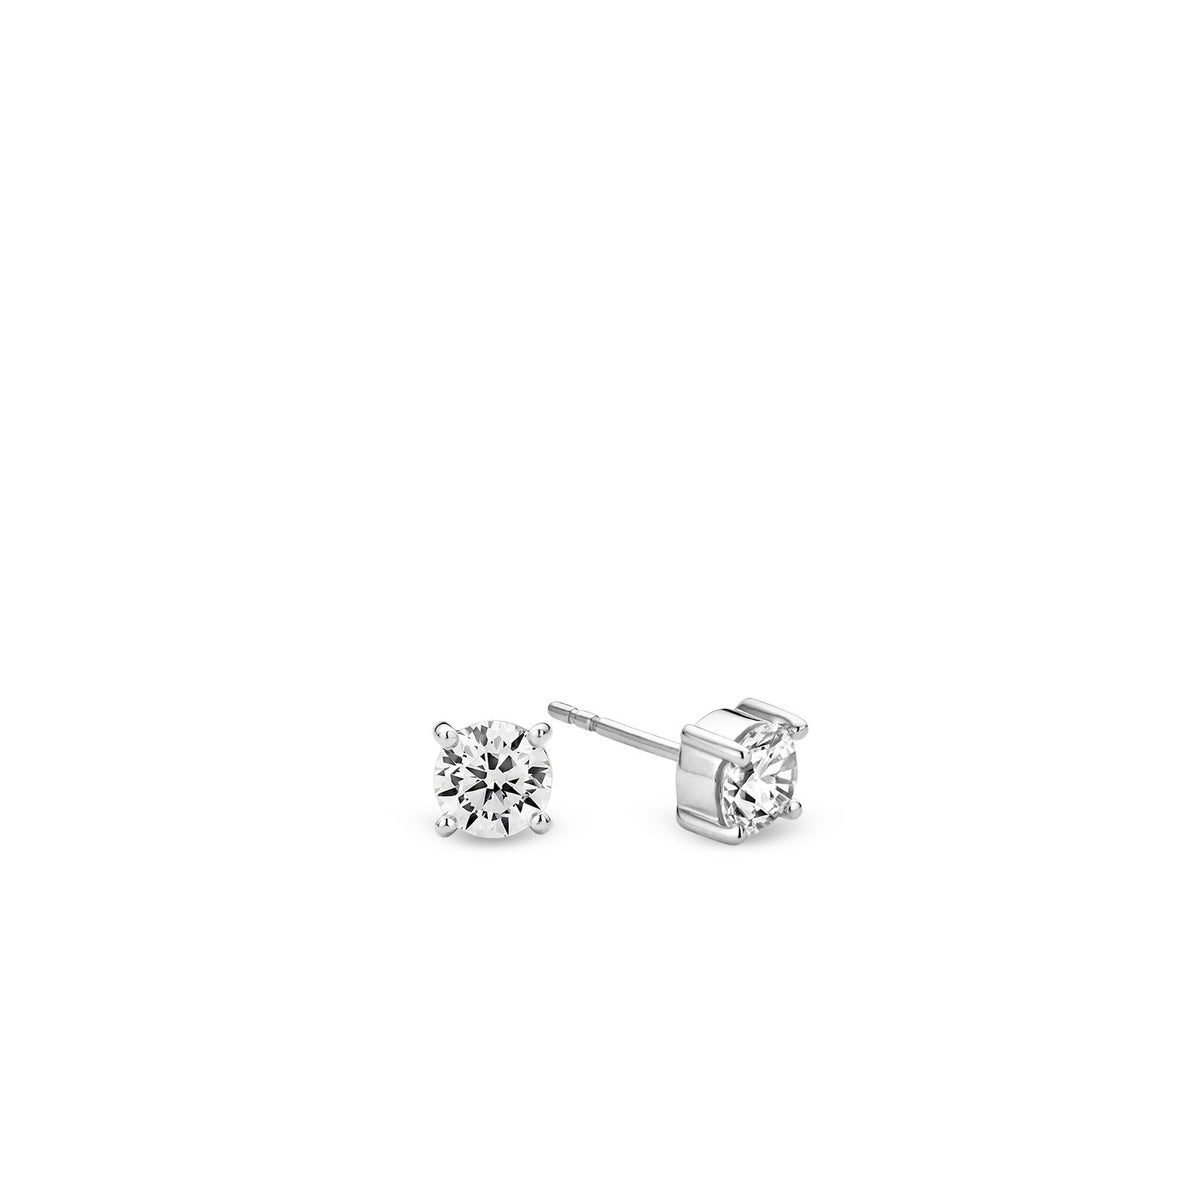 TI SENTO Sterling Silver Four Prong Set Cubic Zirconia Earrings